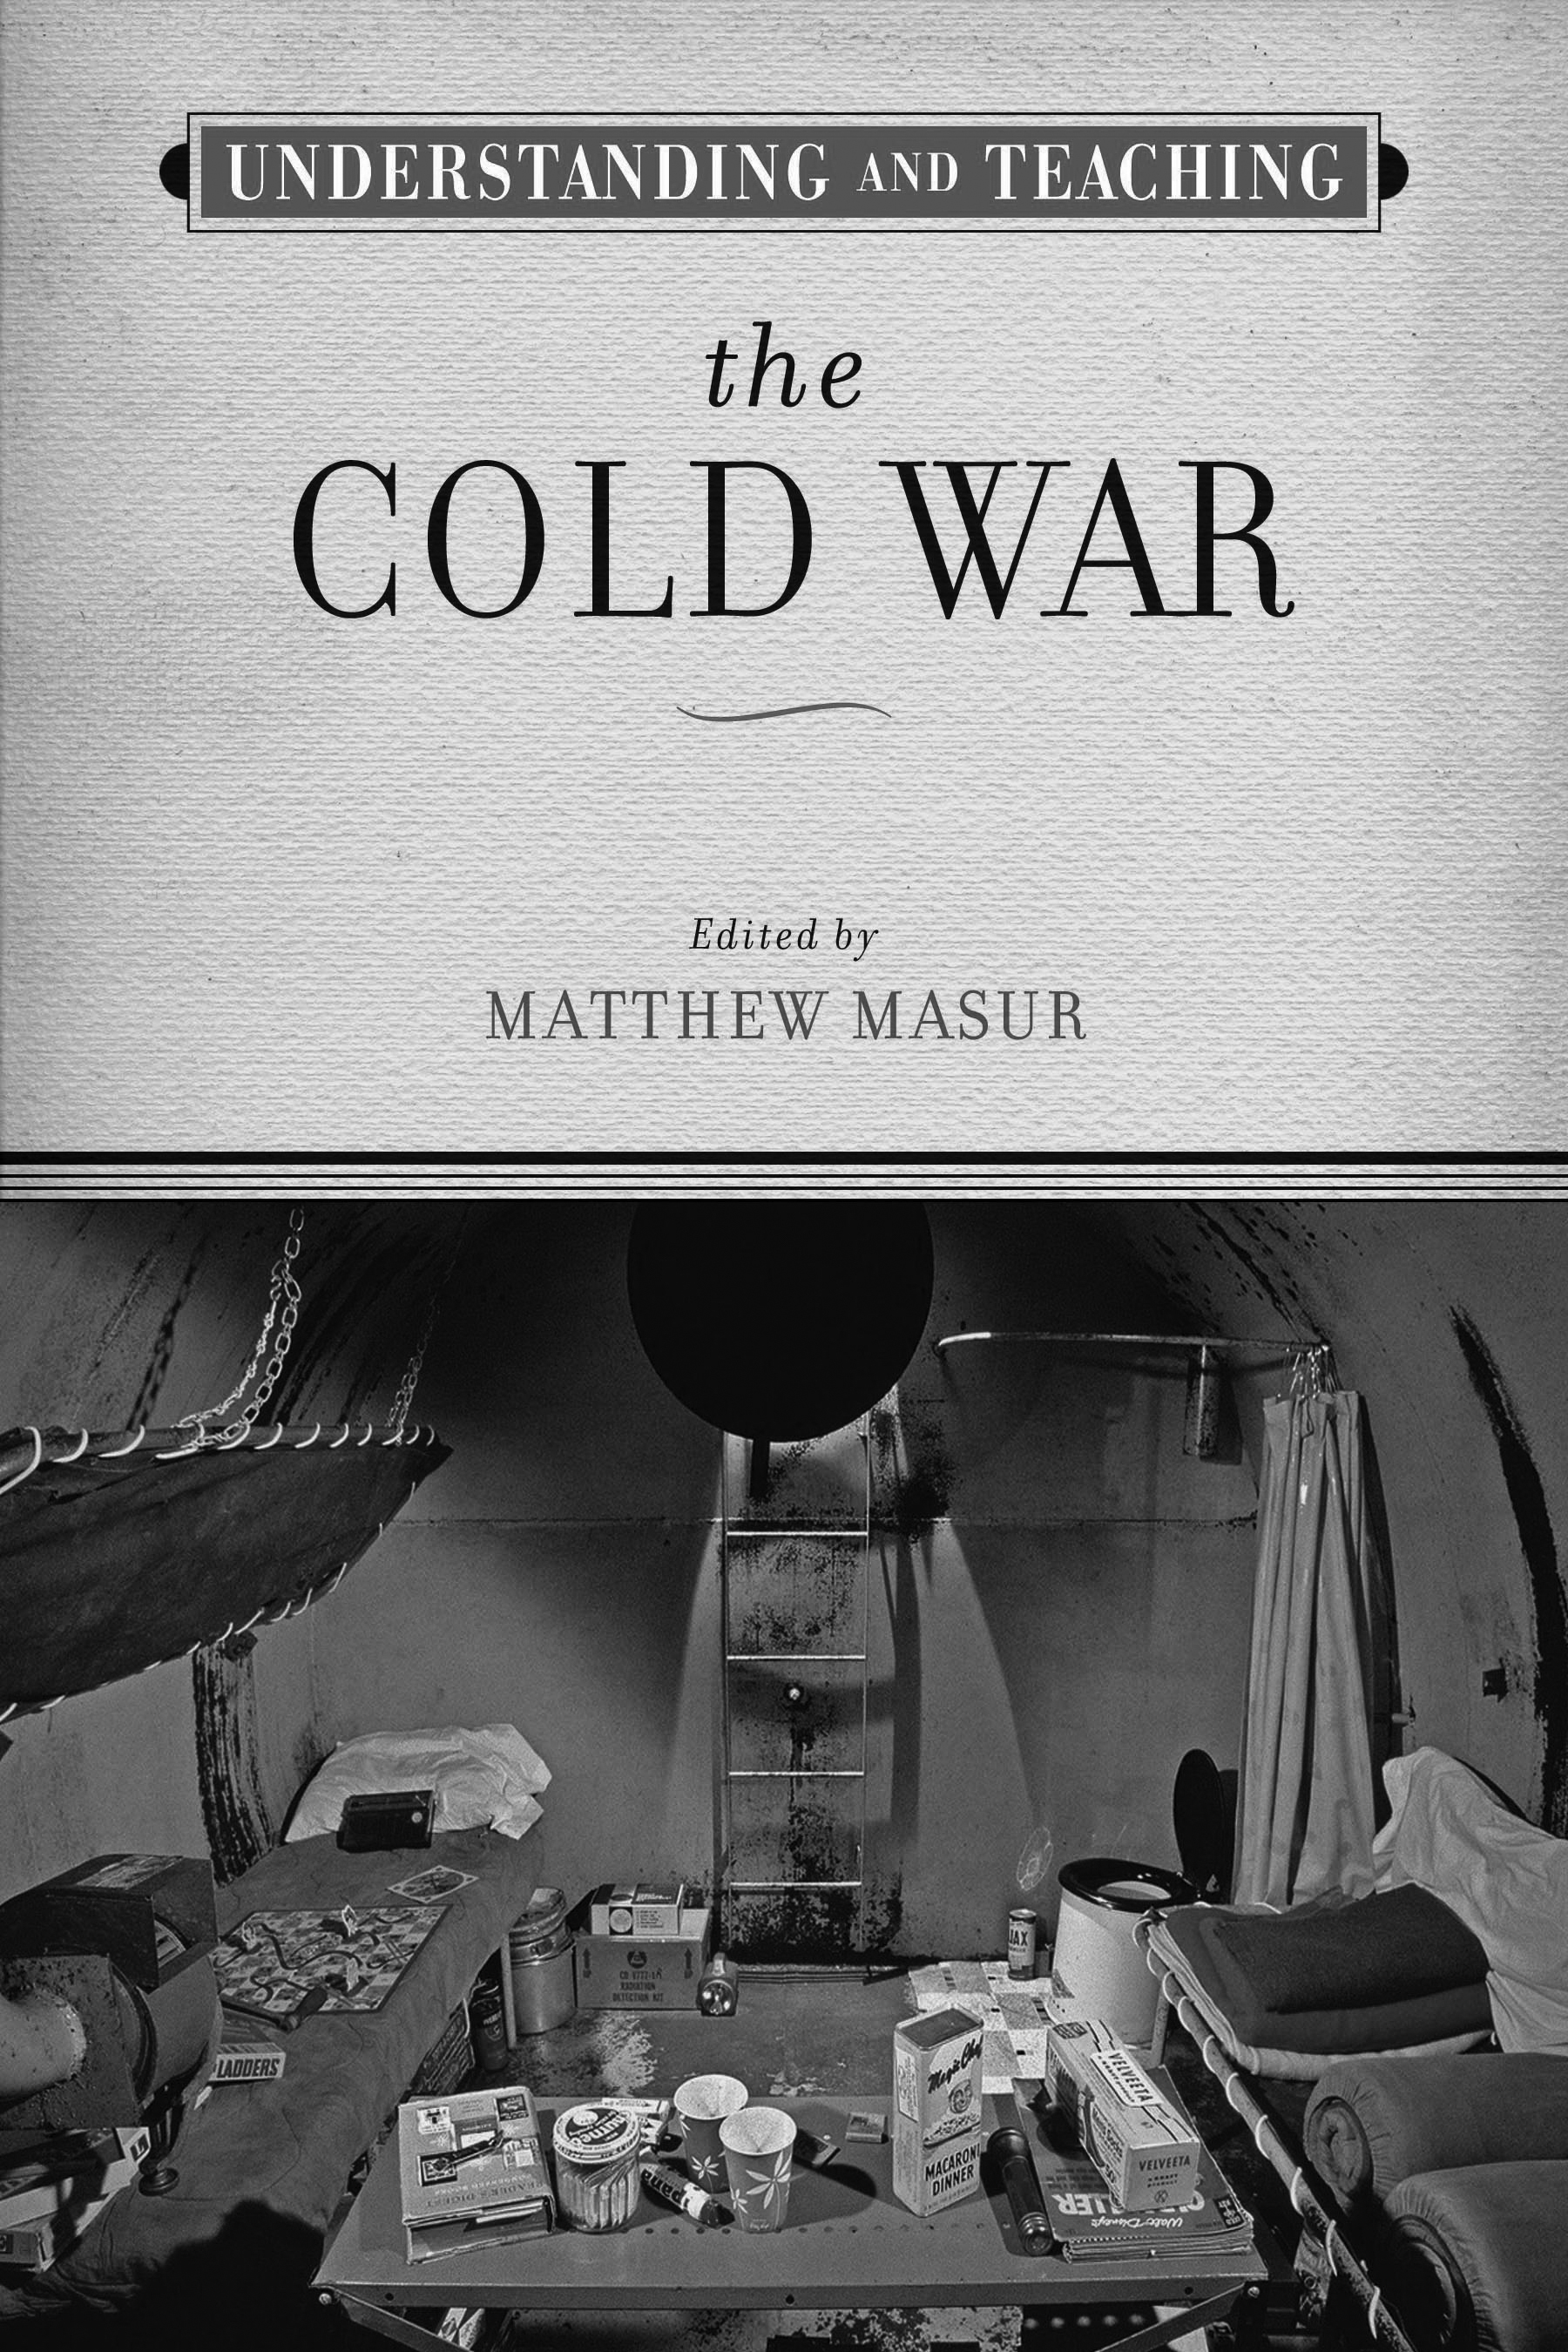 origins of the cold war essay essays about nursing research career  uw press understanding and teaching the cold war high resolution cover b w